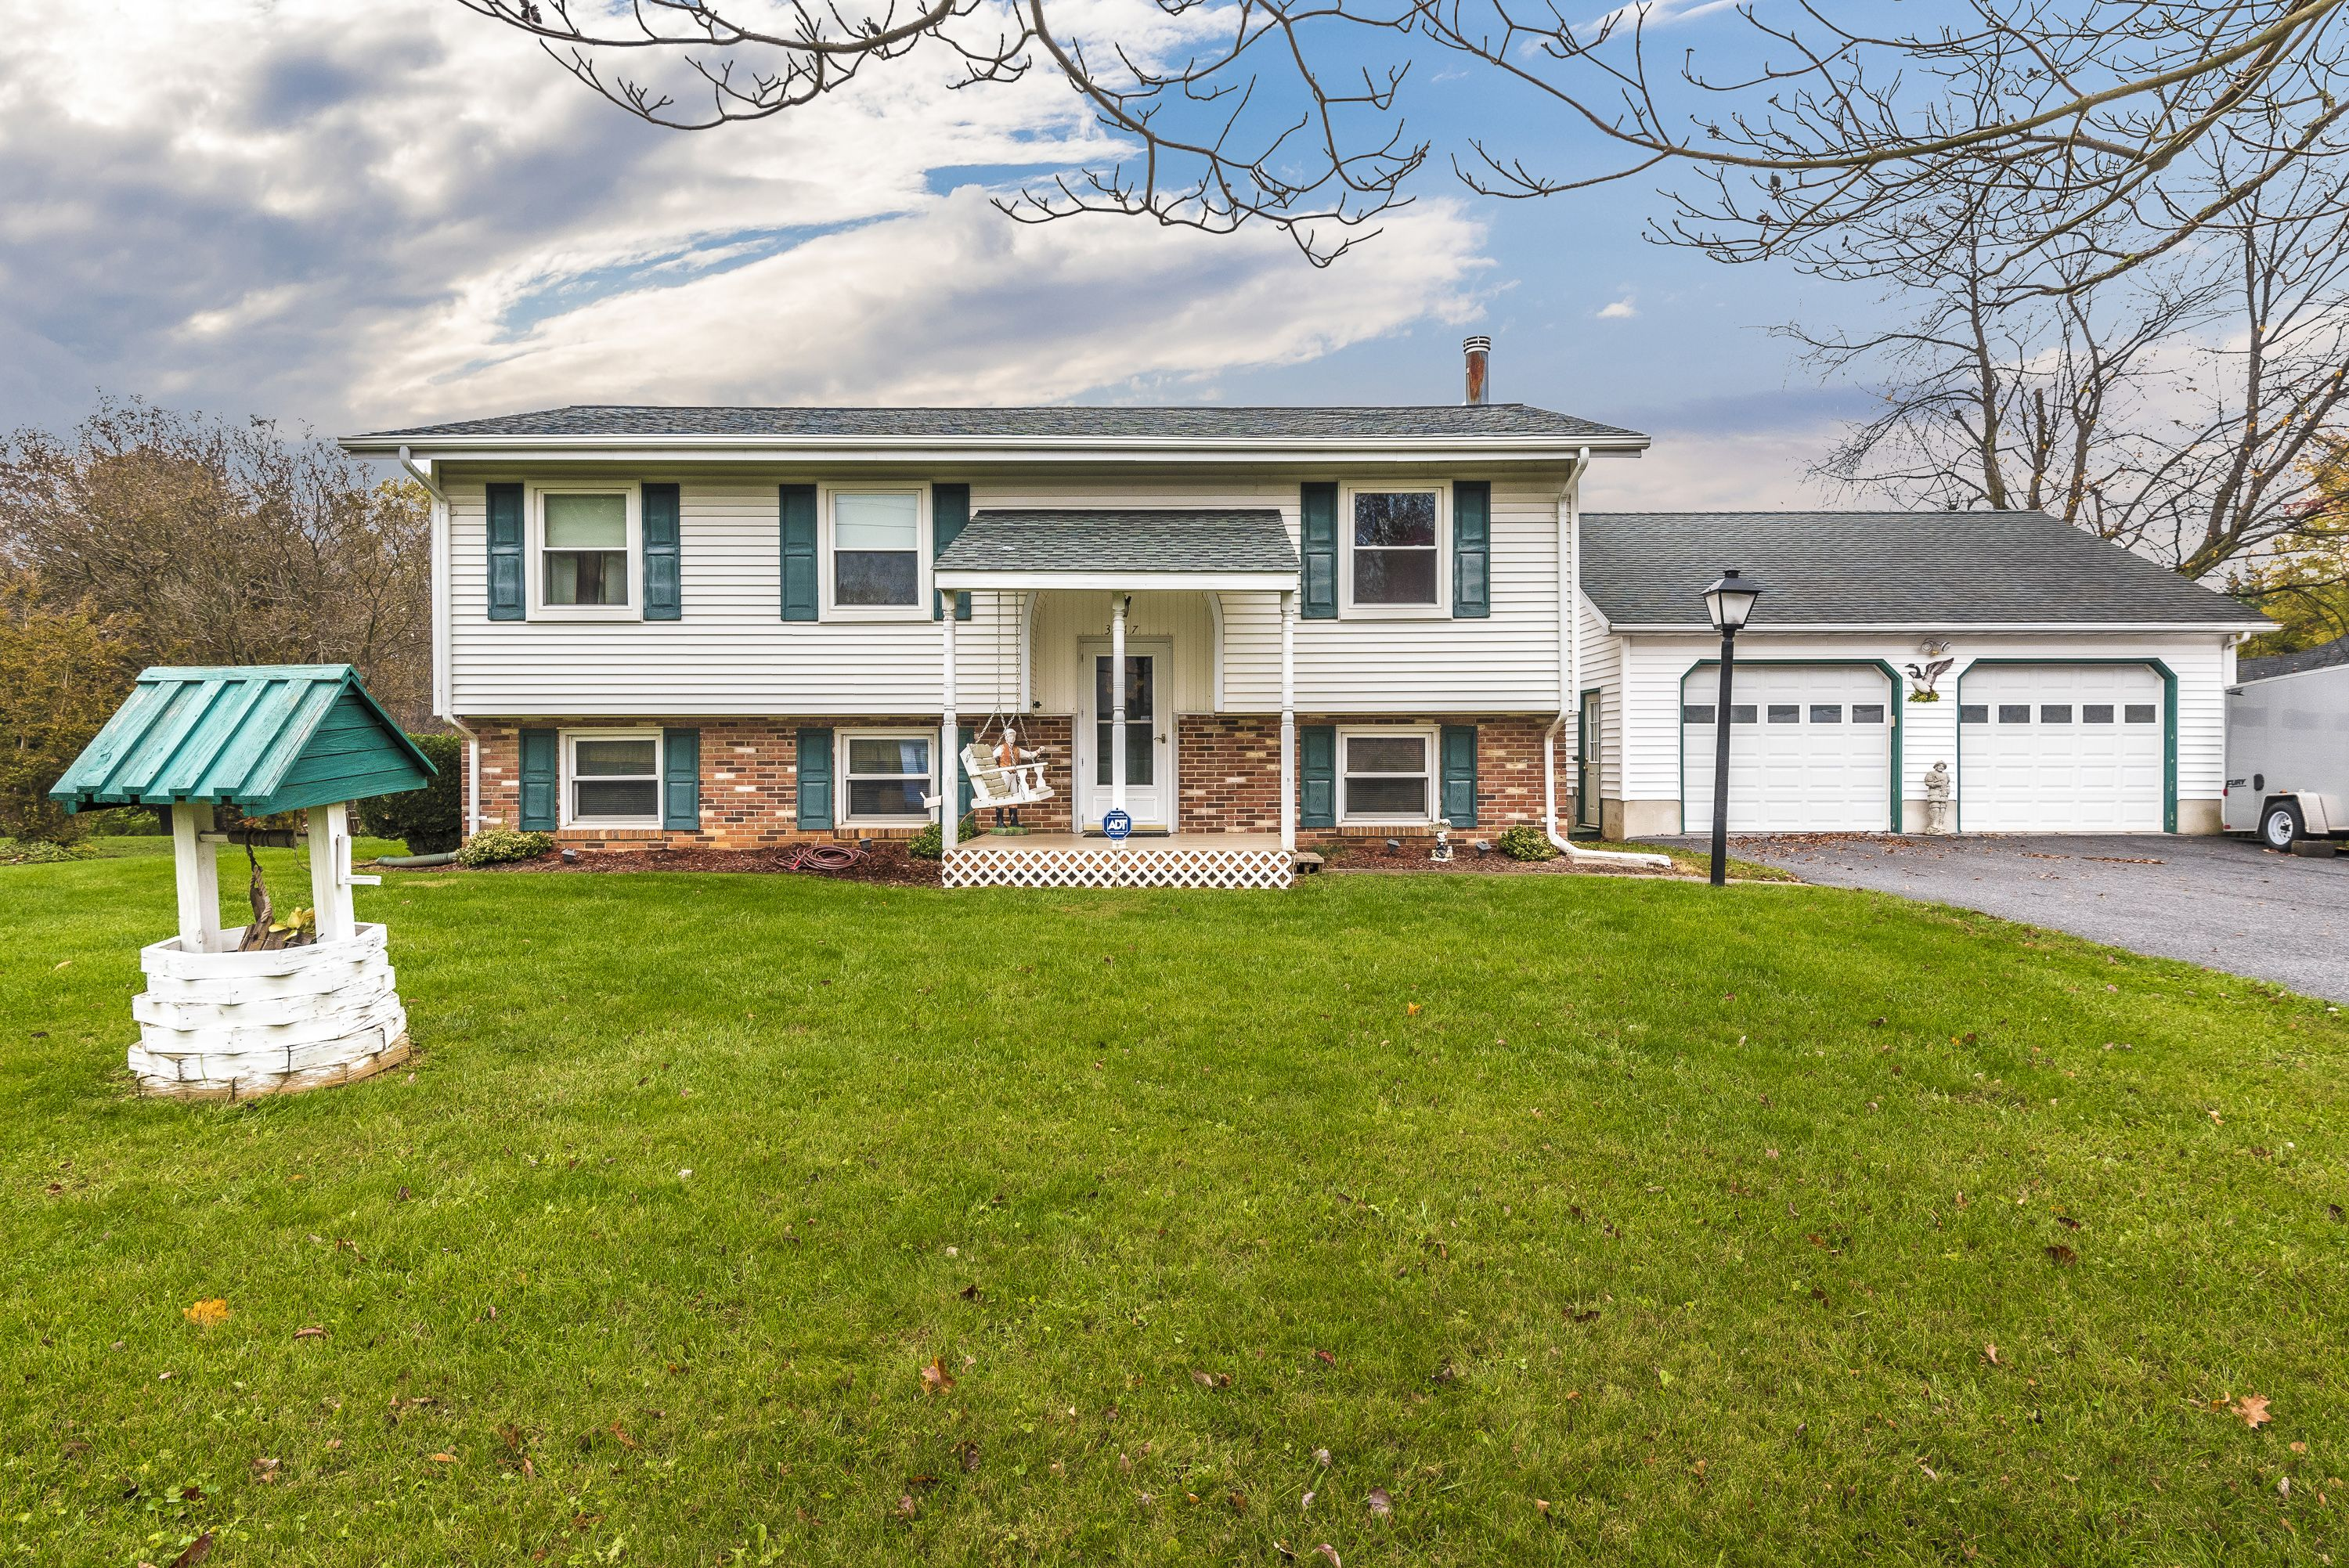 Carrie Minard Of Century 21® Redwood Realty Just Listed 3217 Hooper Road  New Windsor MD 21776 Open House: Sunday, November 12th From 2pm 4pm  Beautifully ...